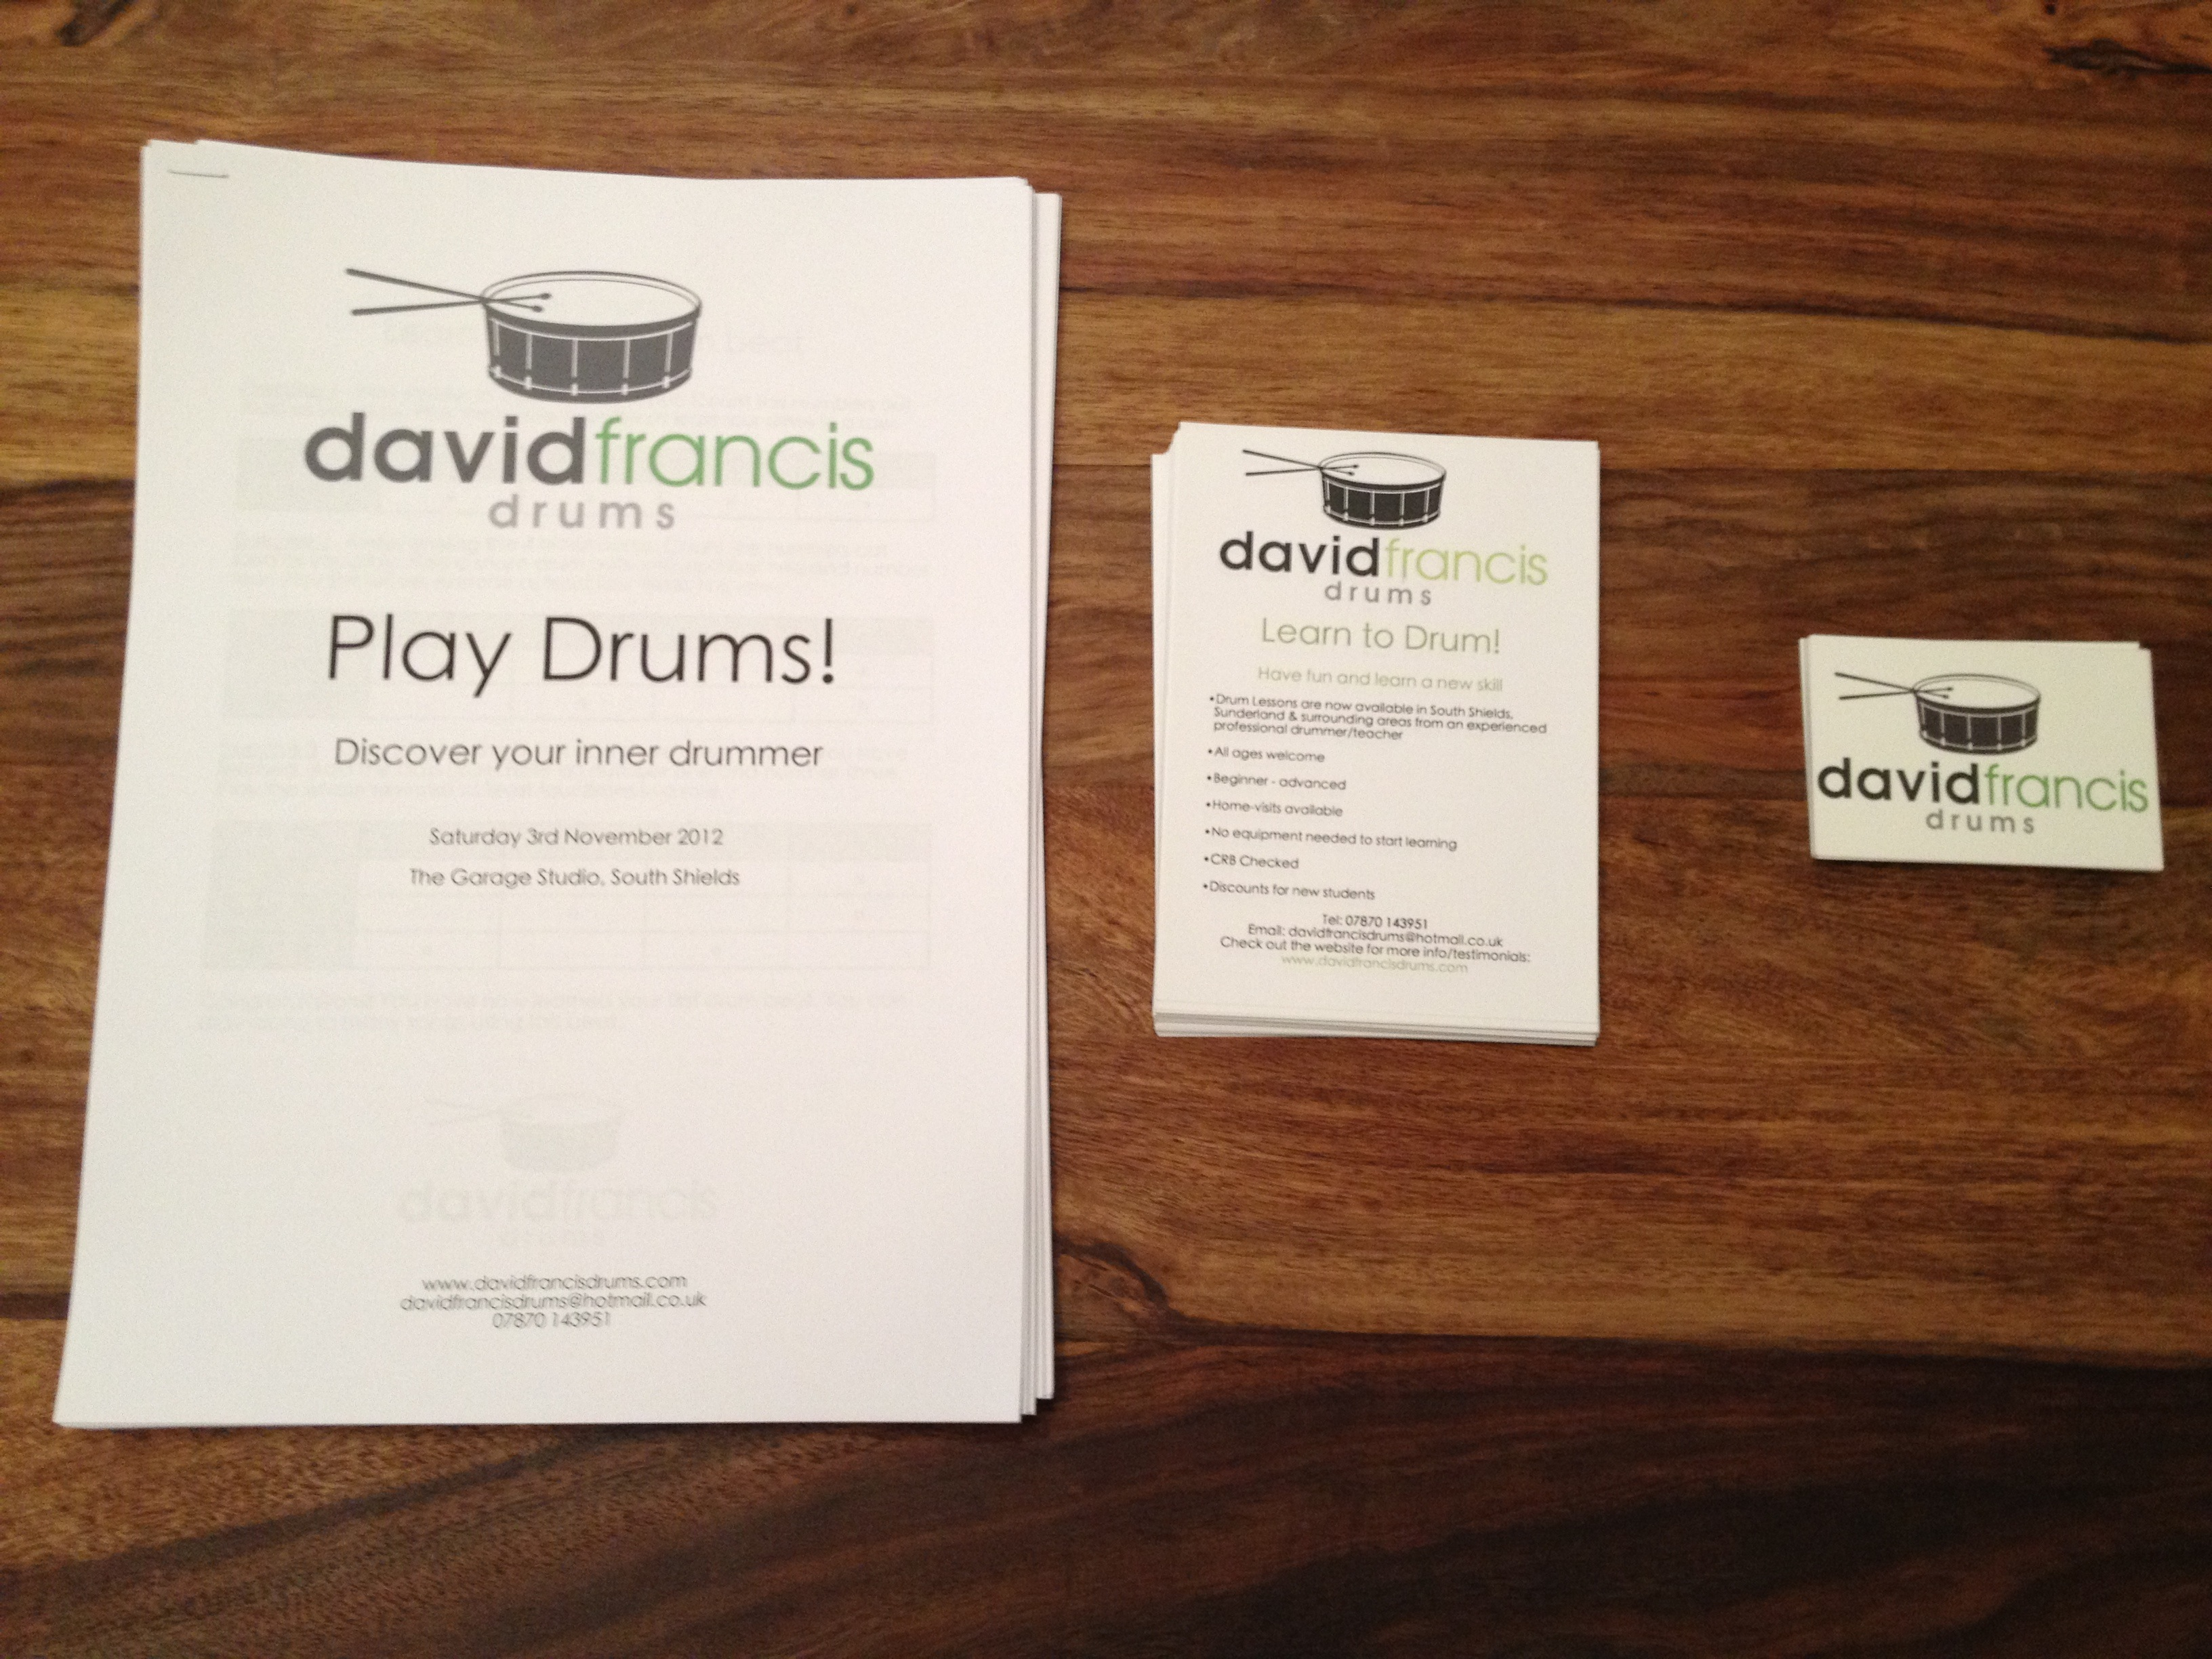 davfrancis | David Francis Drums